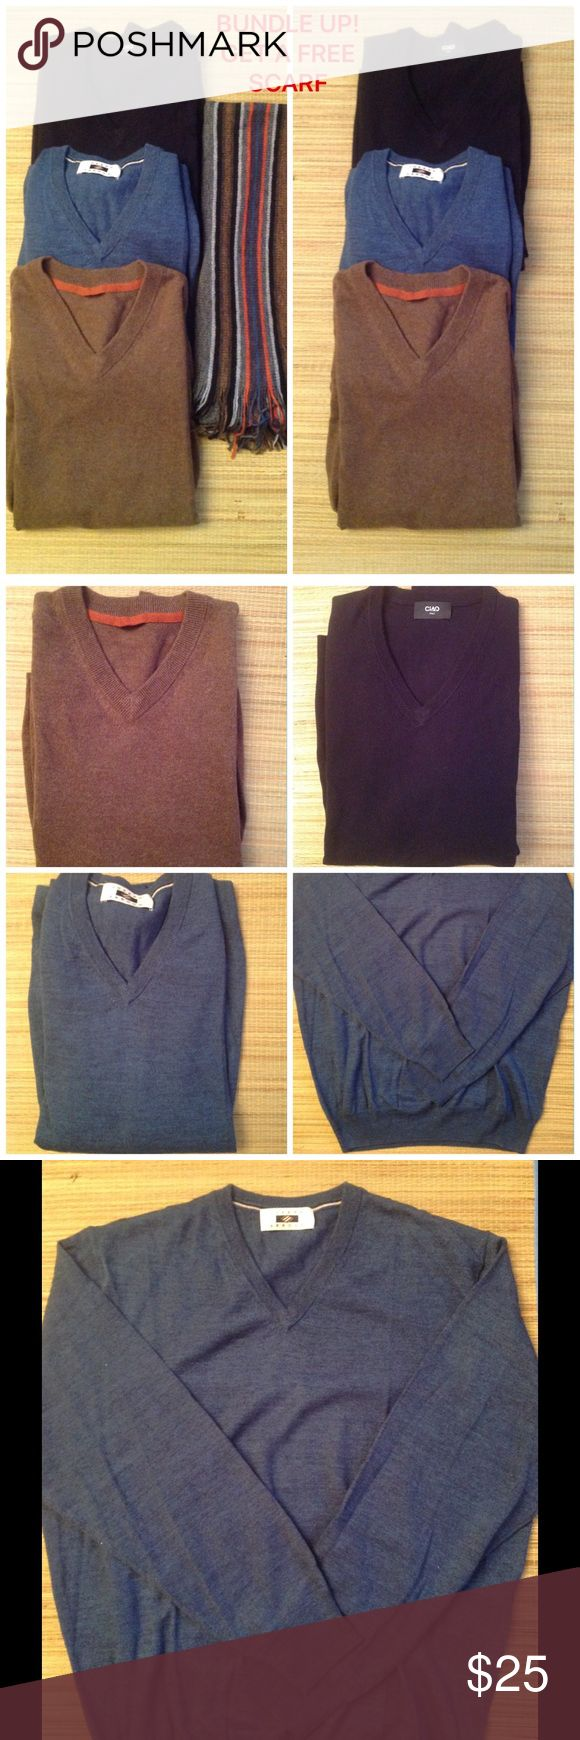 MENS V NEVK LIGHT WEIGHT SWEATERS GORGEOUS MENS V NECK SWEATERS. 3pcs LEFT. 1PC IN DENIM BLUE, 1PC IN BLACK, 1PC IN BROWN. ALL SIZE LARGES. LIGHT WEIGHT. CAN BE WORN AS A LAYERING PIECE OR ALONE. BRAND NEW‼️ BUNDLE UP, BUY 3 OR MORE GET A FREE UNISEX SCARF. Sweaters V-Neck